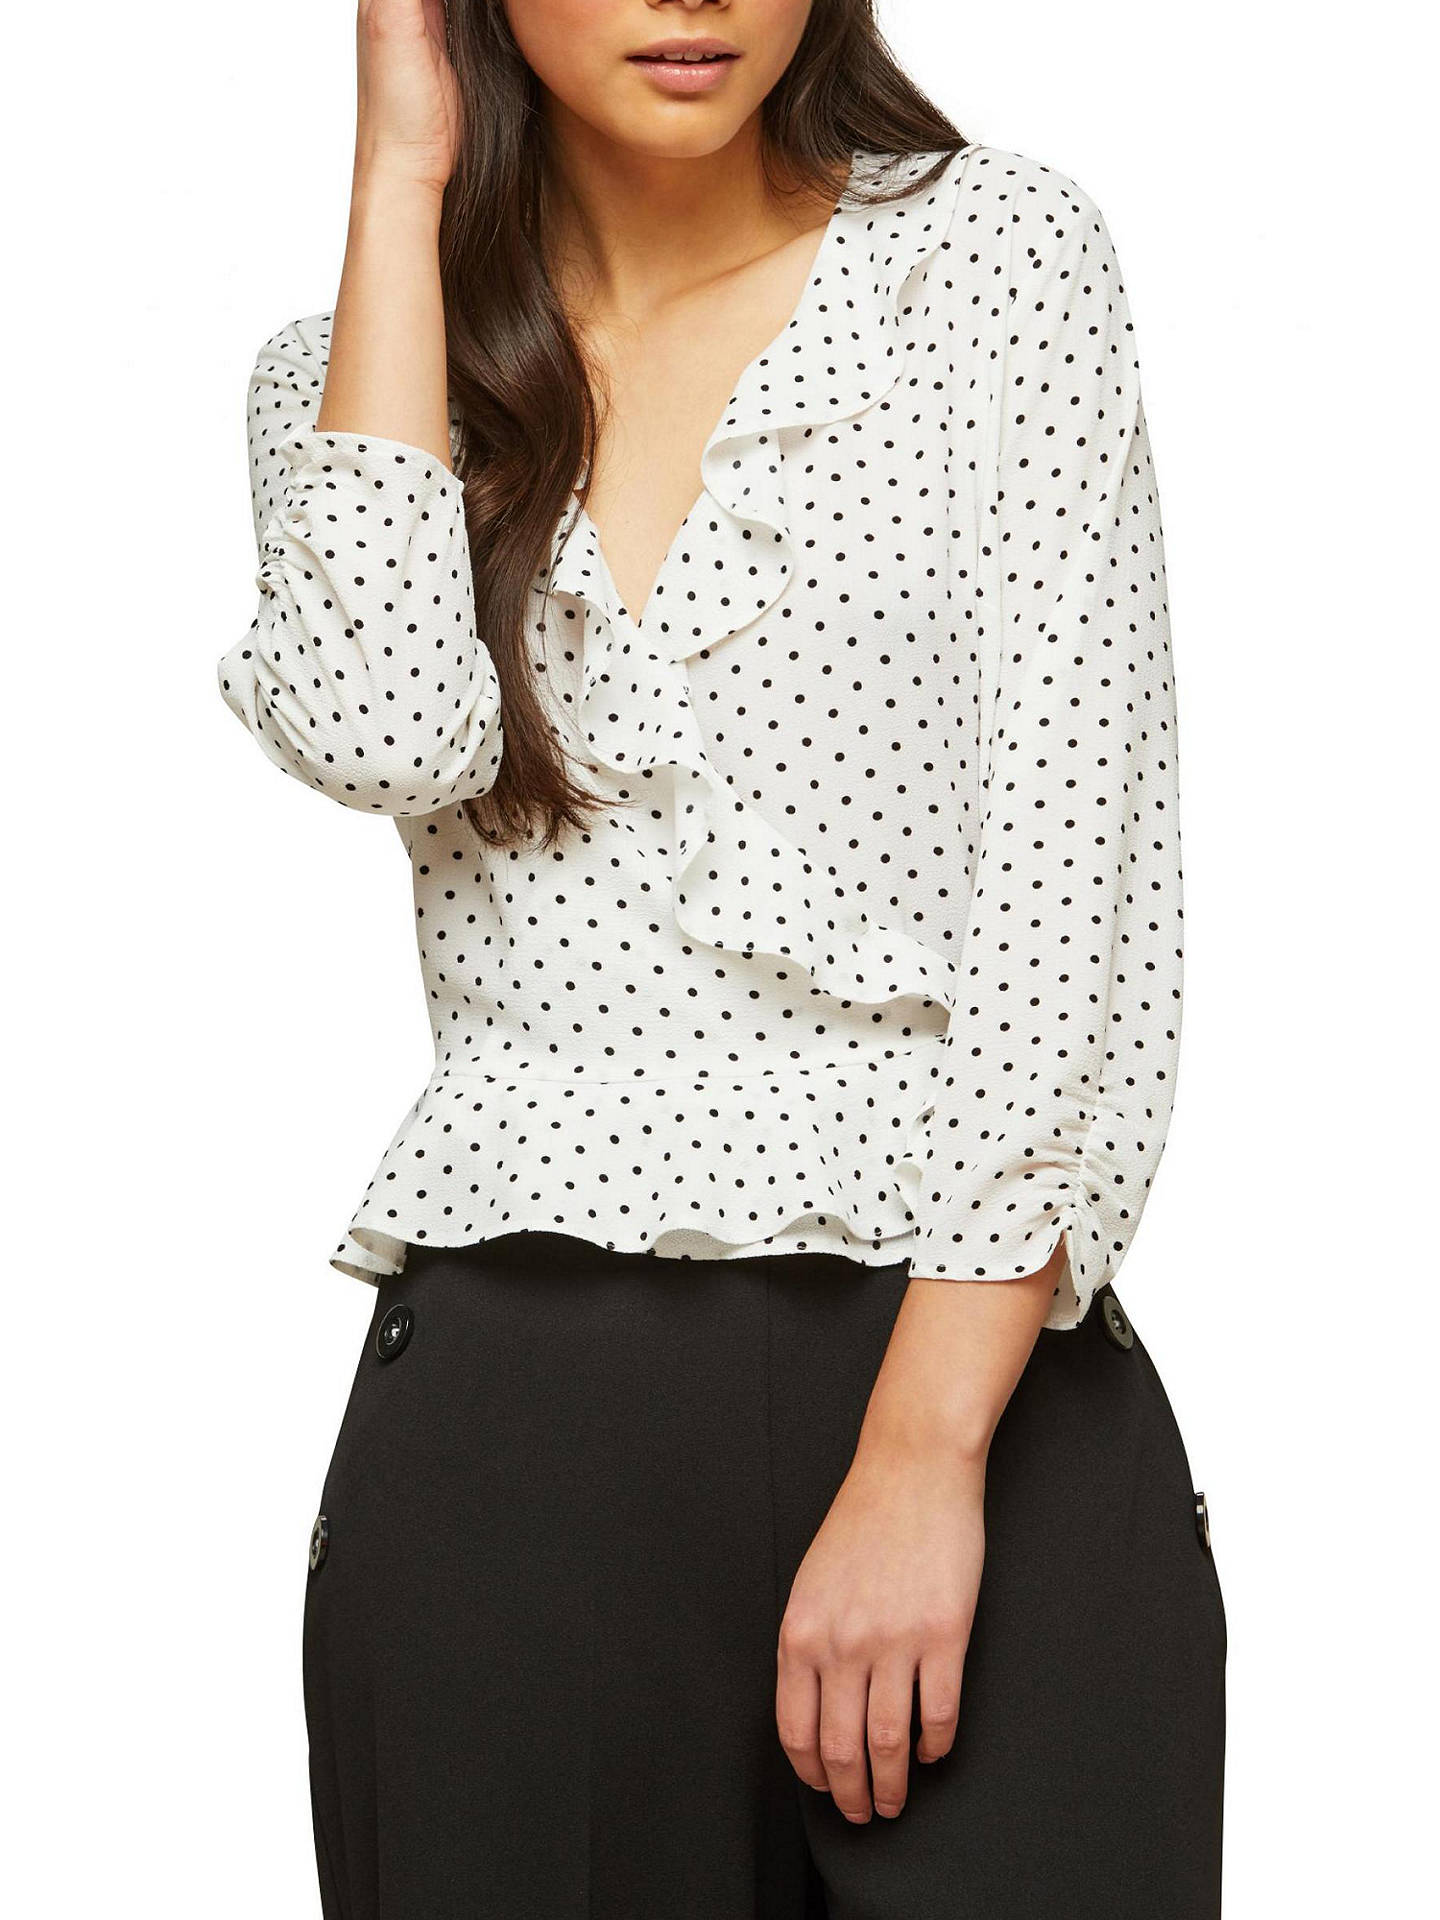 981df937db5bcd Buy Miss Selfridge Spot Ruffle Wrap Blouse, Ivory, 6 Online at  johnlewis.com ...